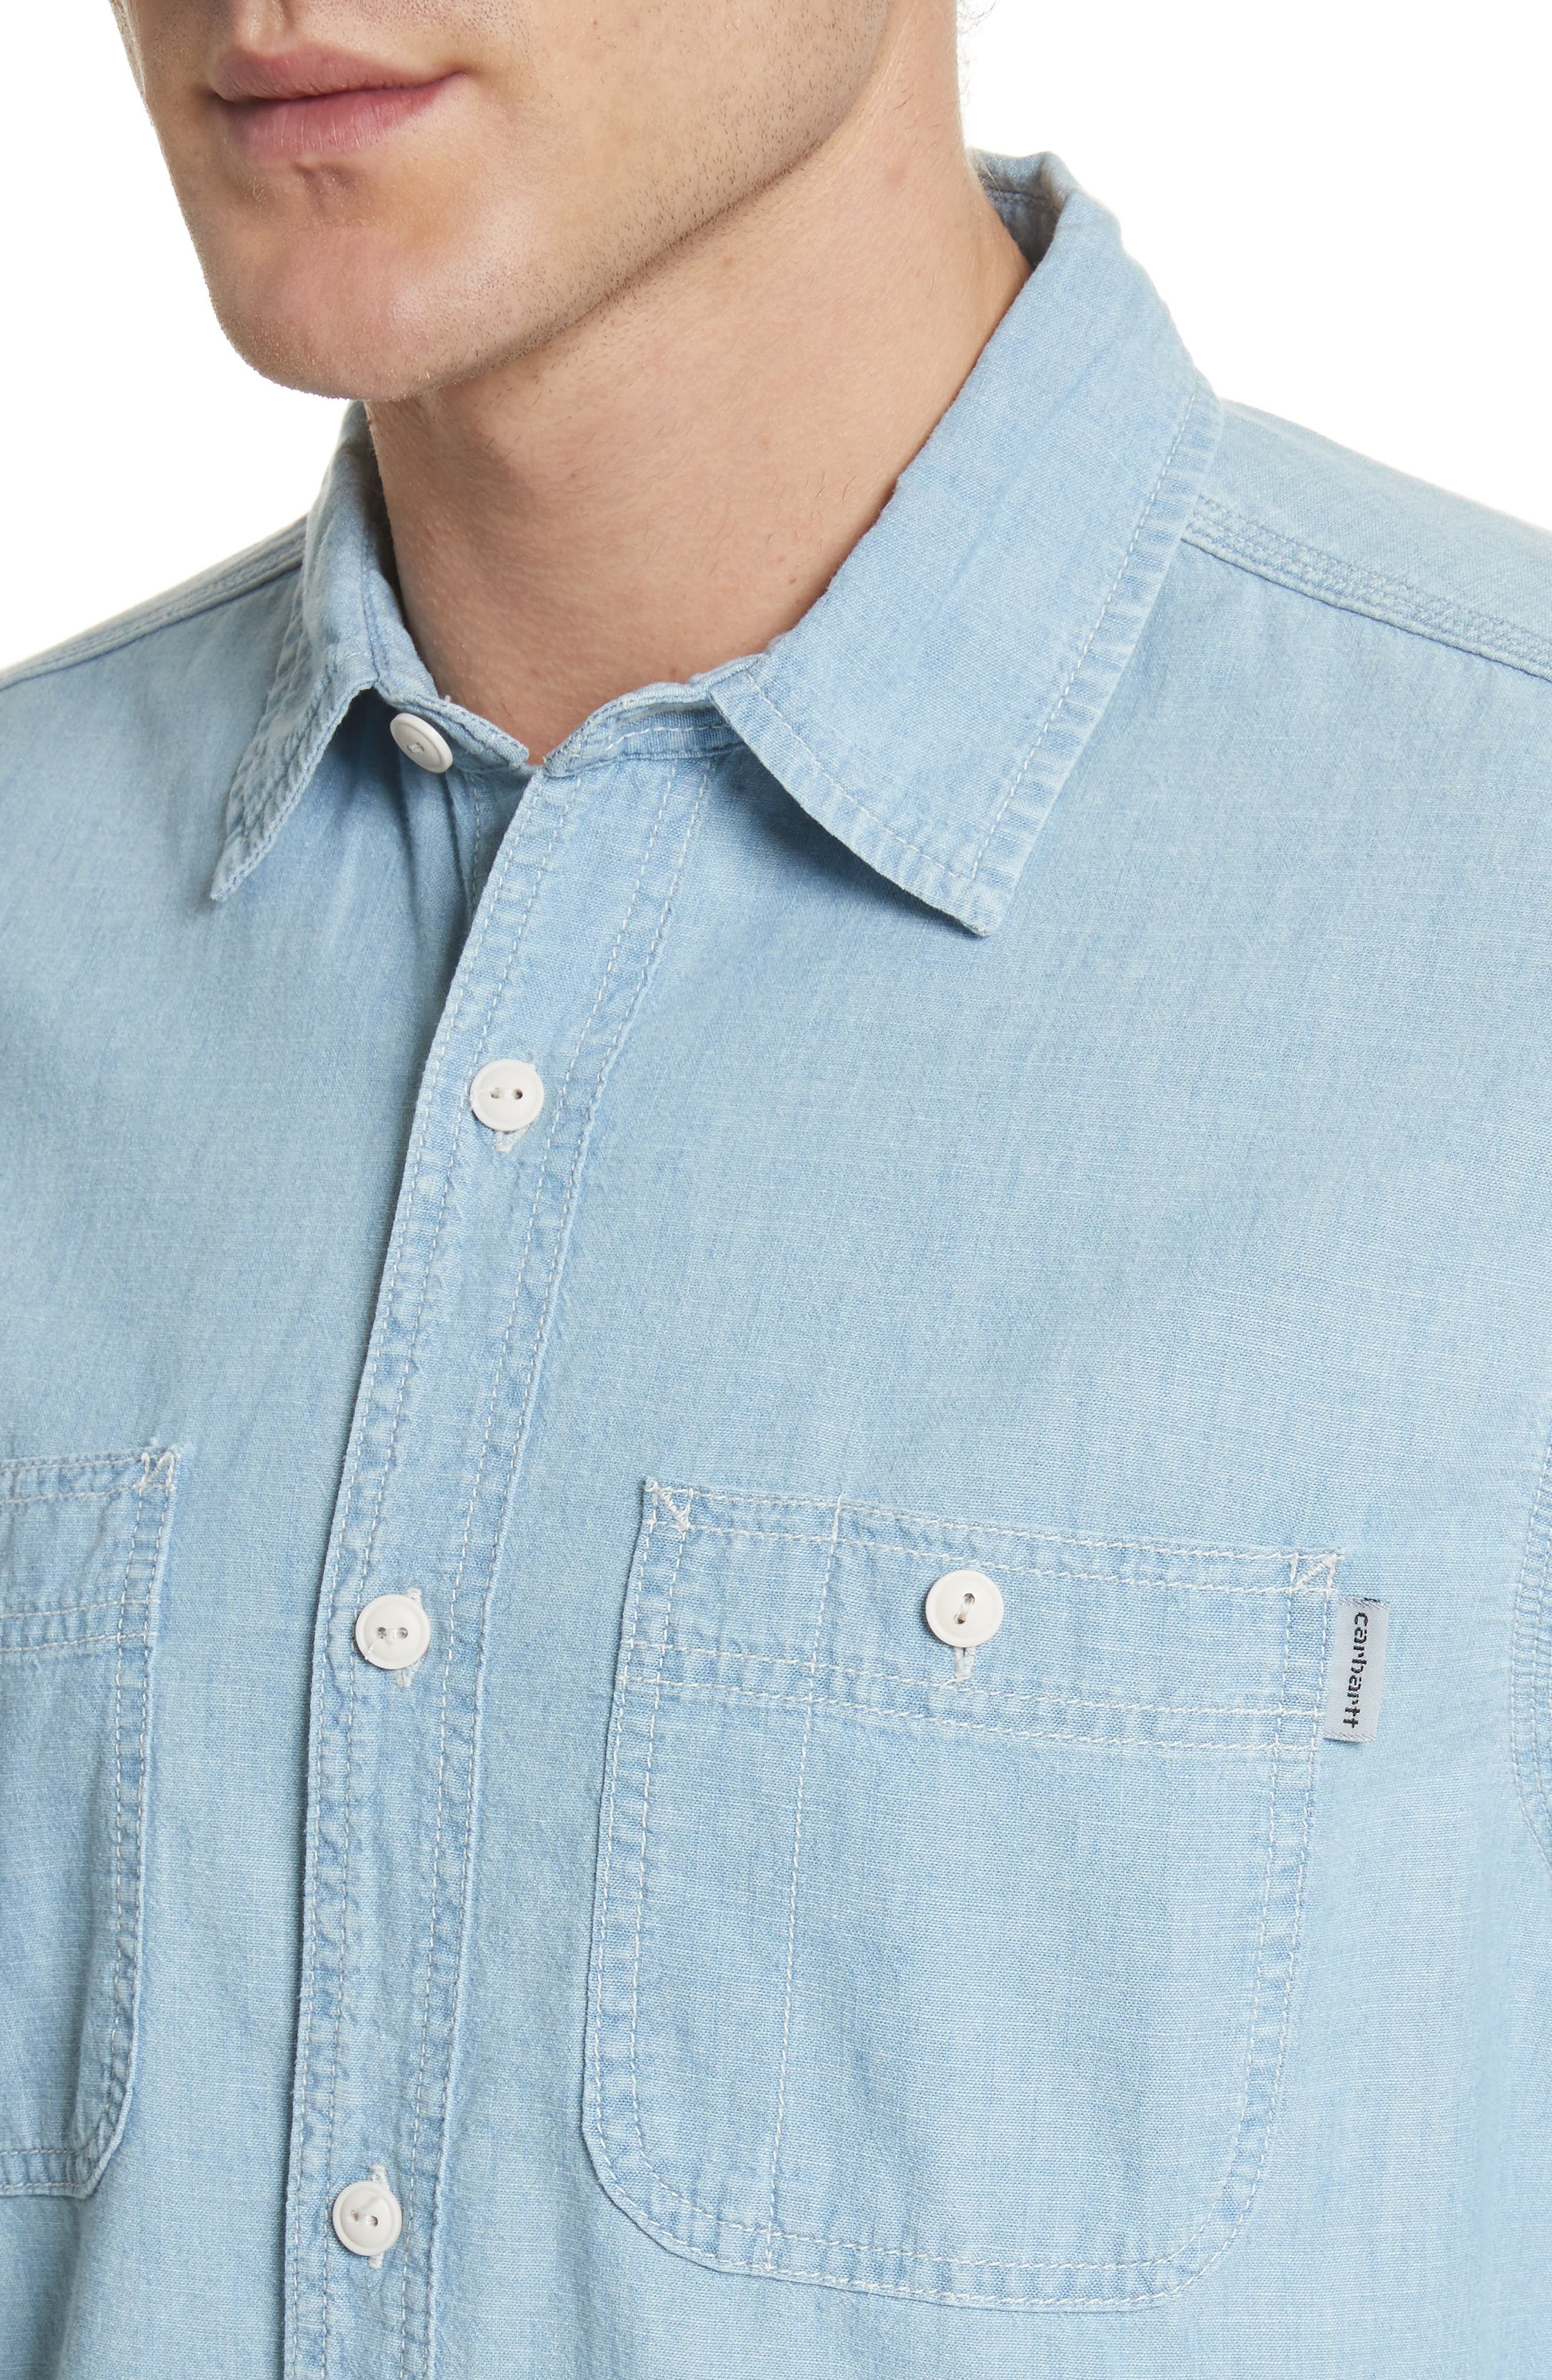 Clink Chambray Shirt,                             Alternate thumbnail 4, color,                             Blue Stone Washed